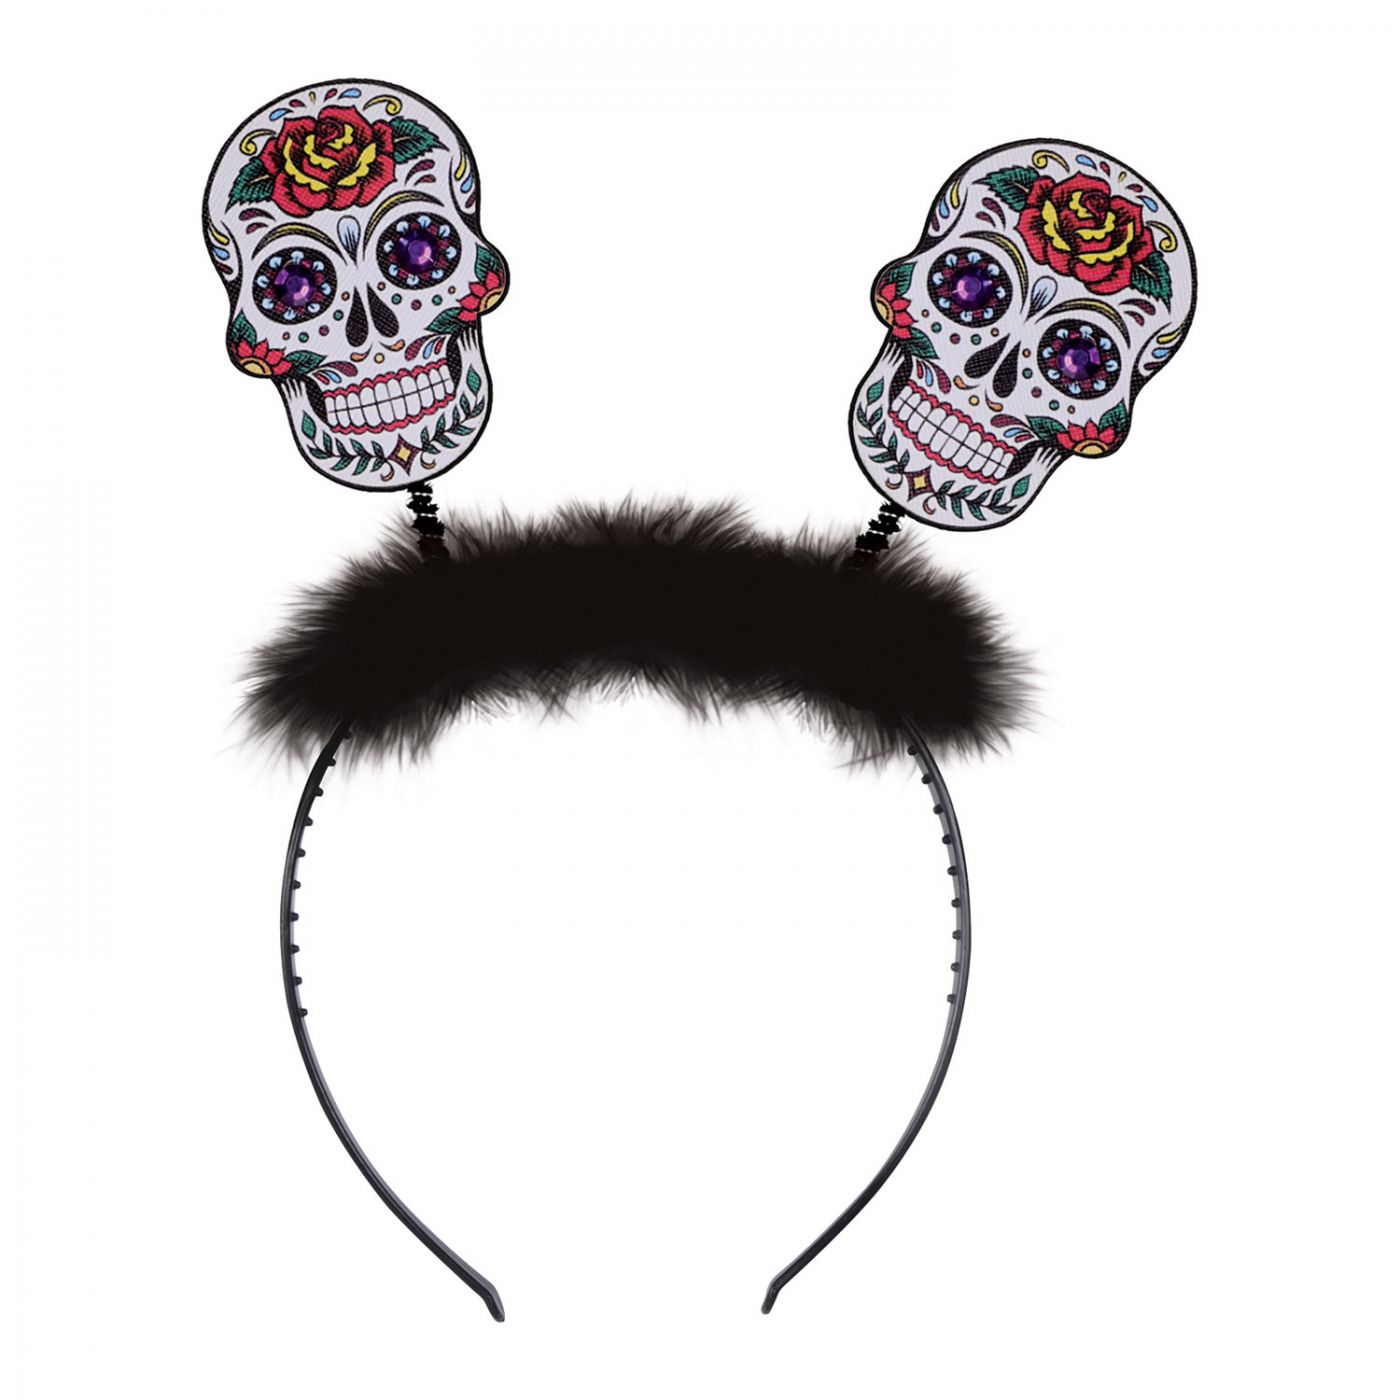 Day Of The Dead Sugar Skull Boppers image